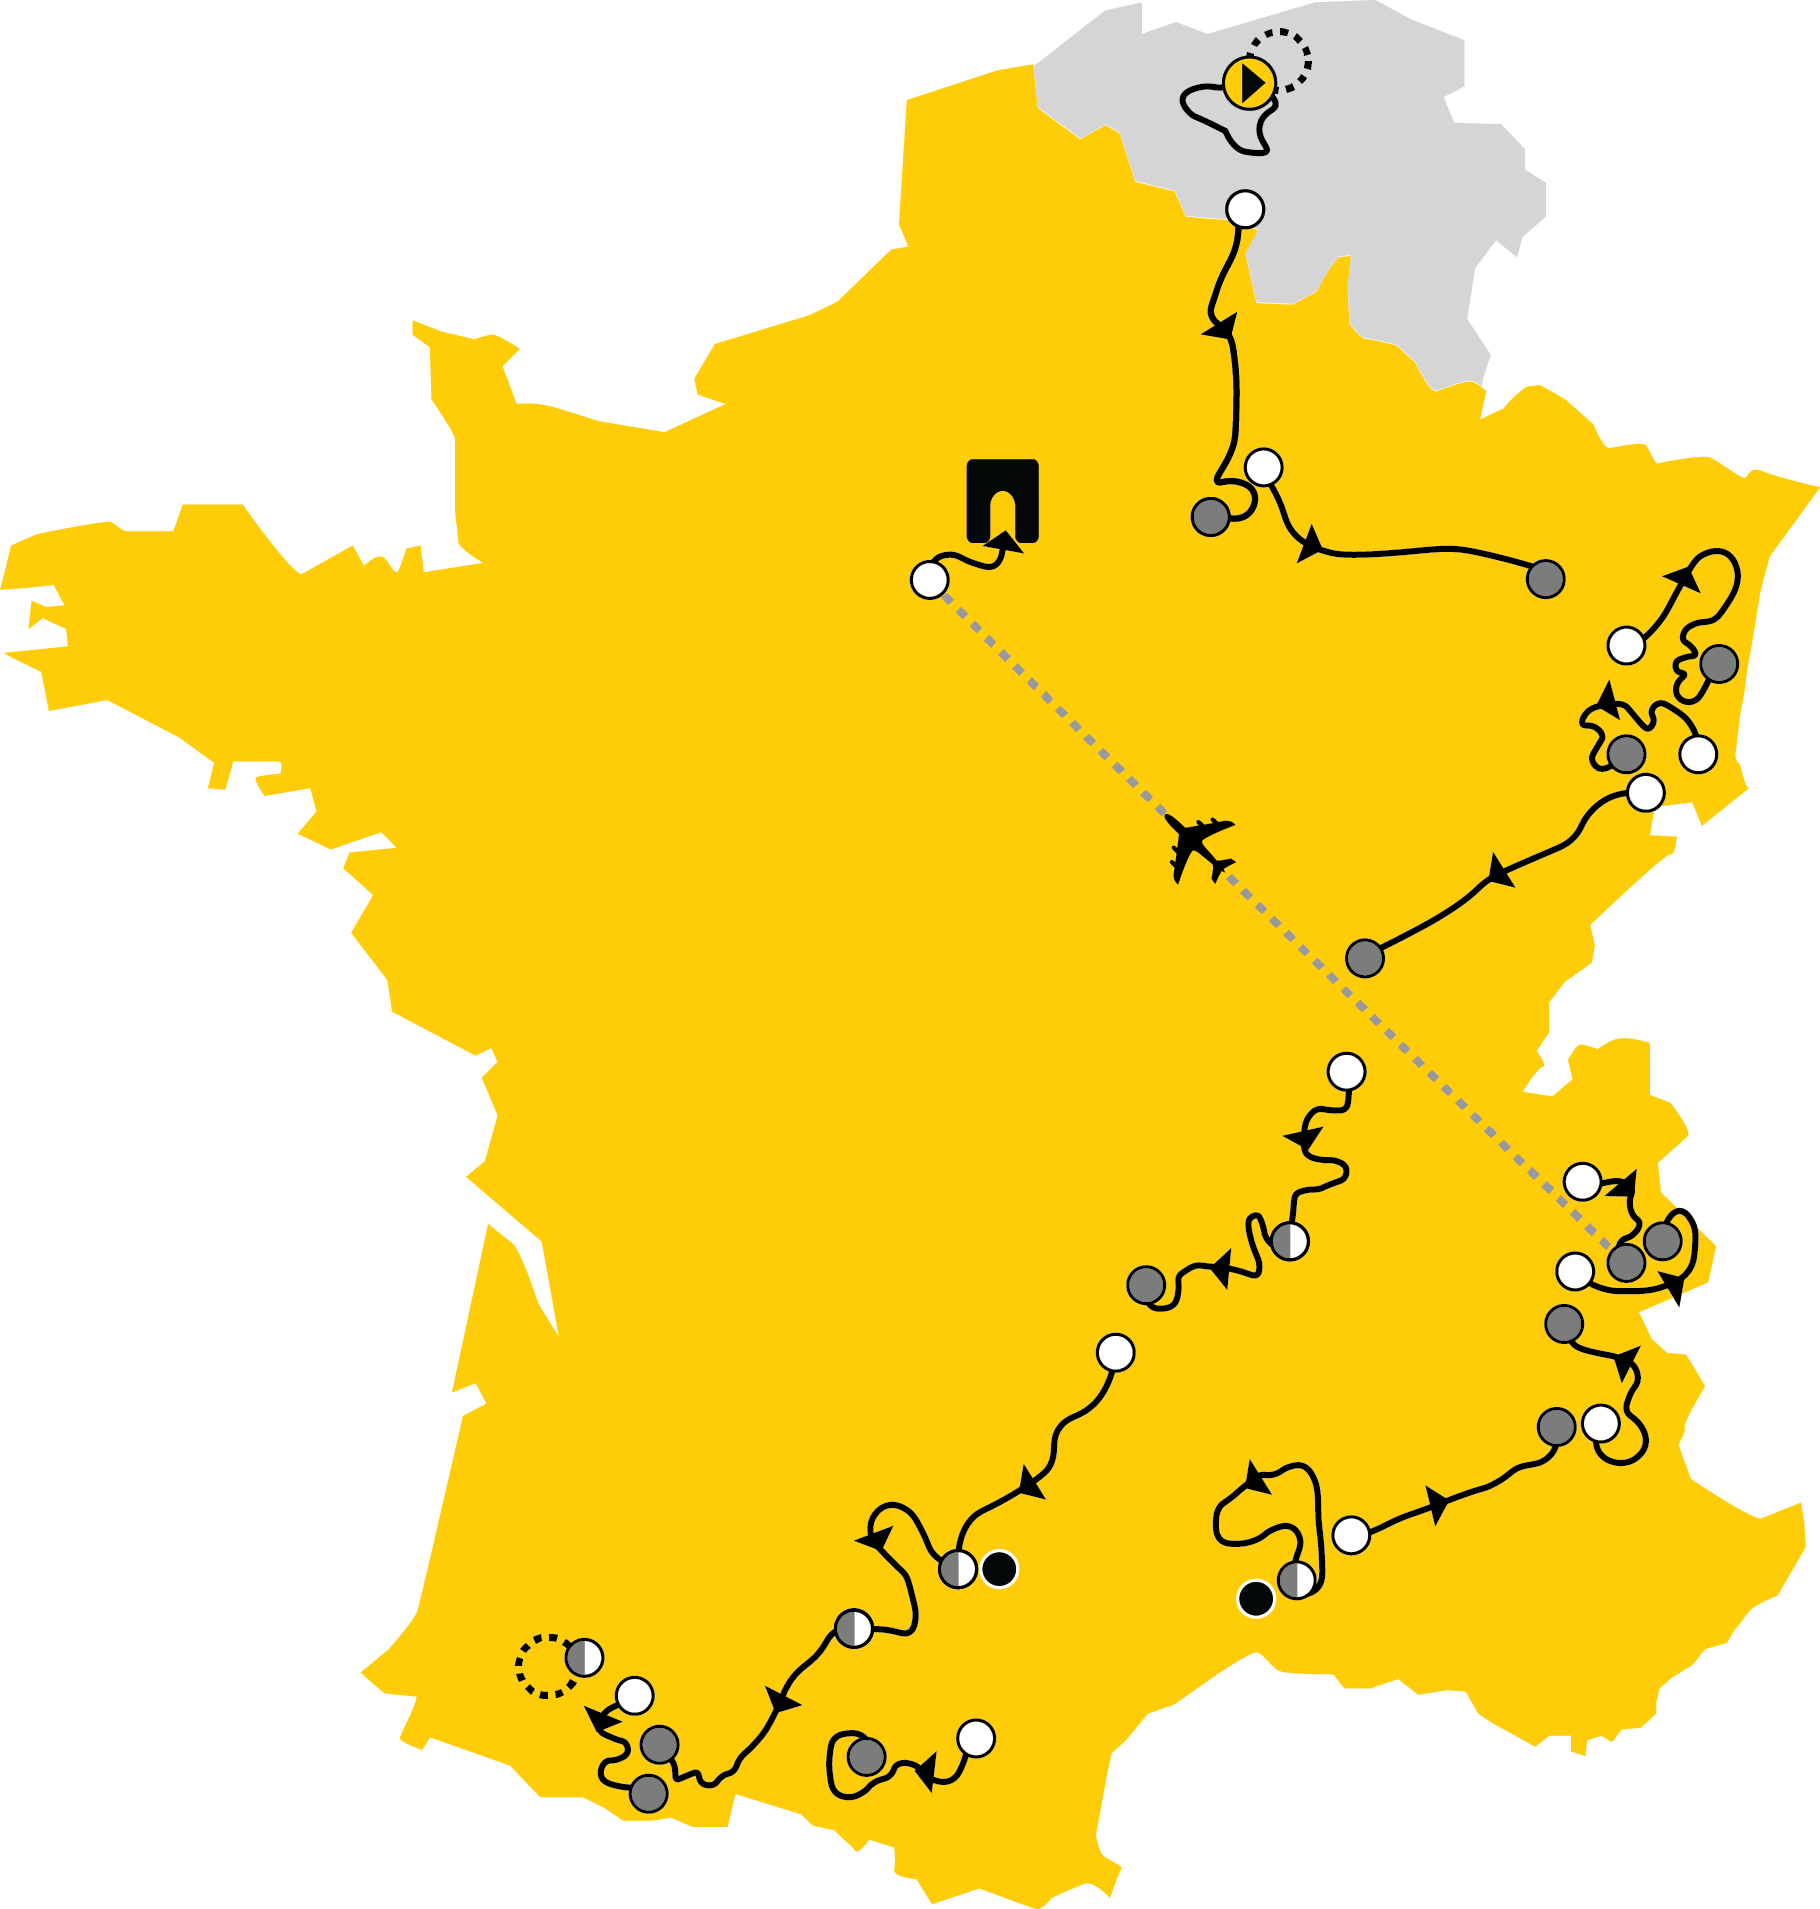 Tour De France 2019 Where Could The Race Be Won Bwin Graphic